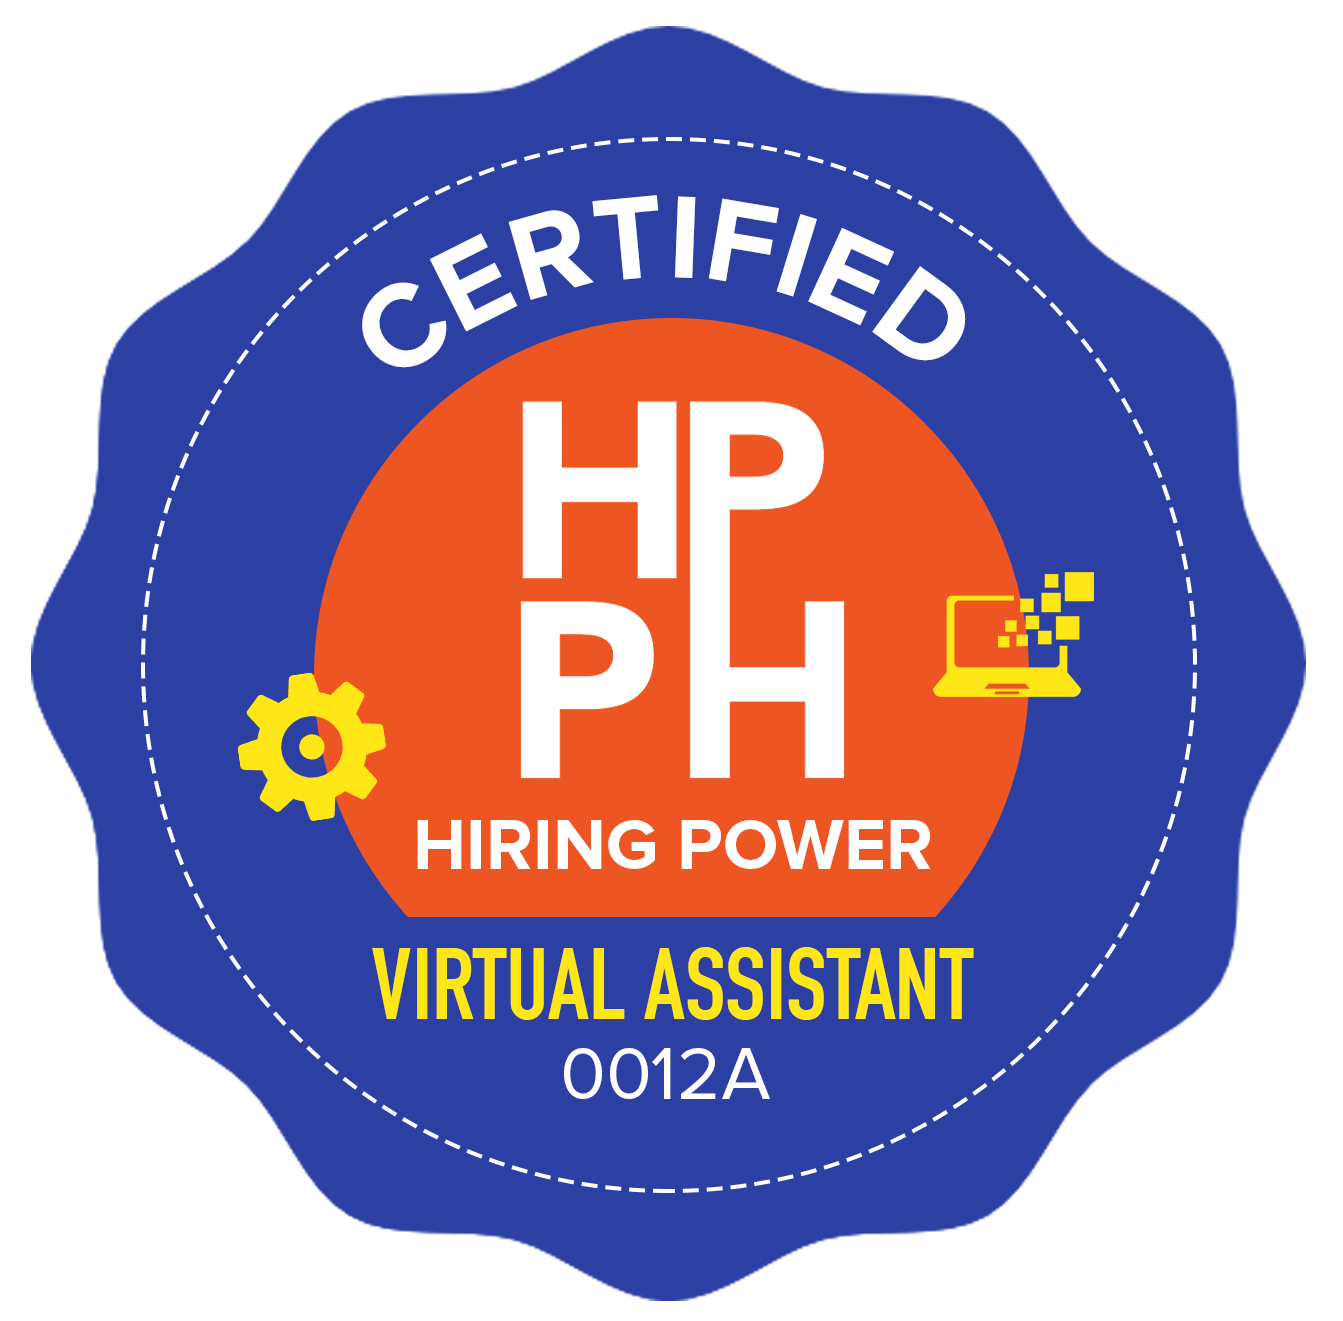 Virtual Assistant Certification Course Hiring Power Ph